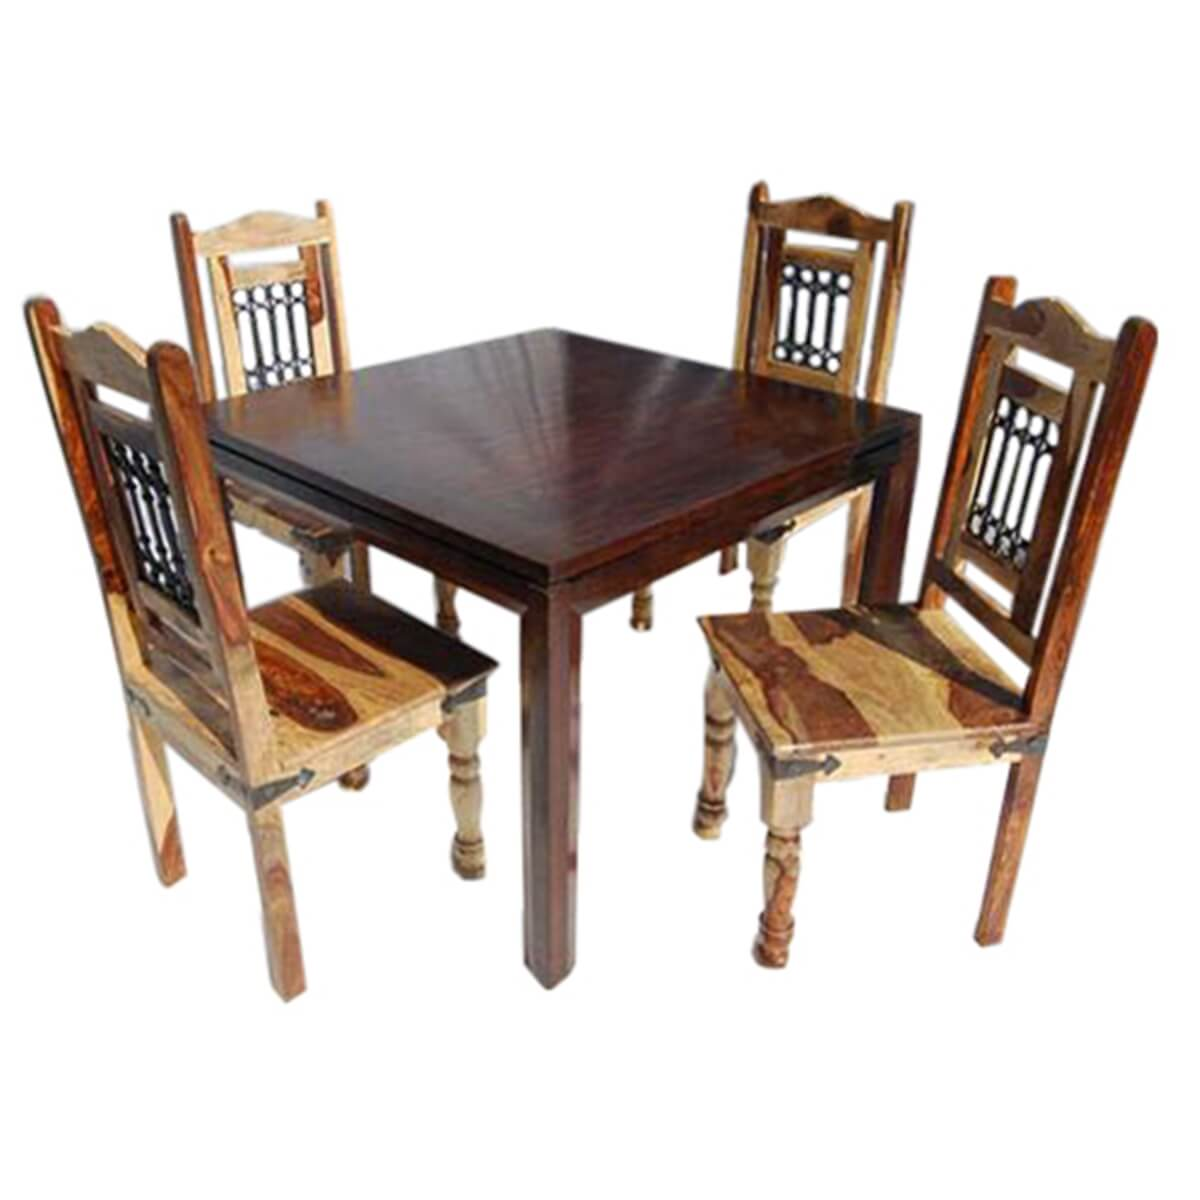 5 pc square dining room table chairs set